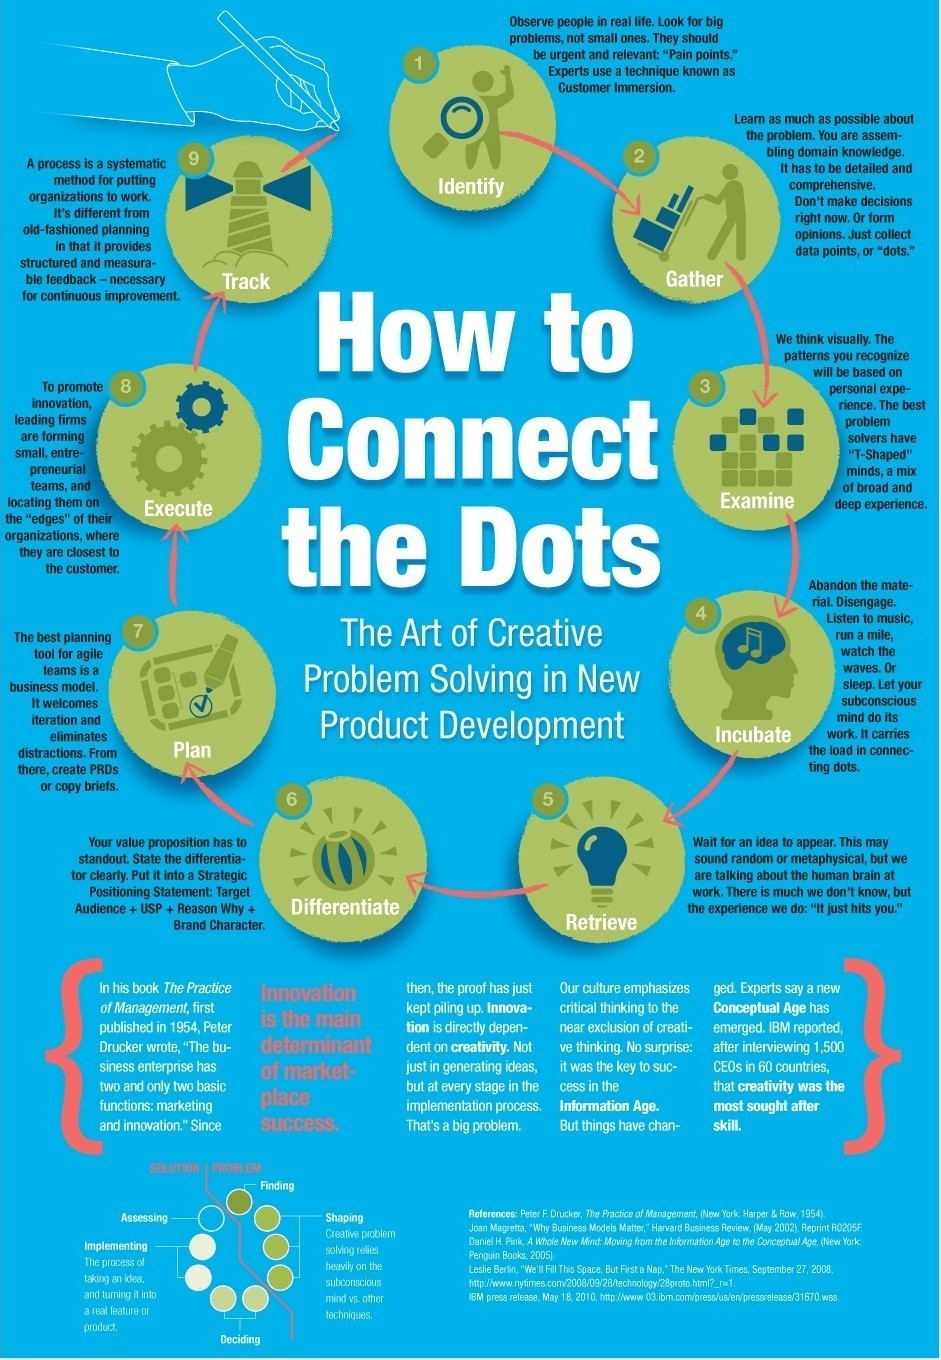 Creative Problem Solving for Product Developers (Infographic)